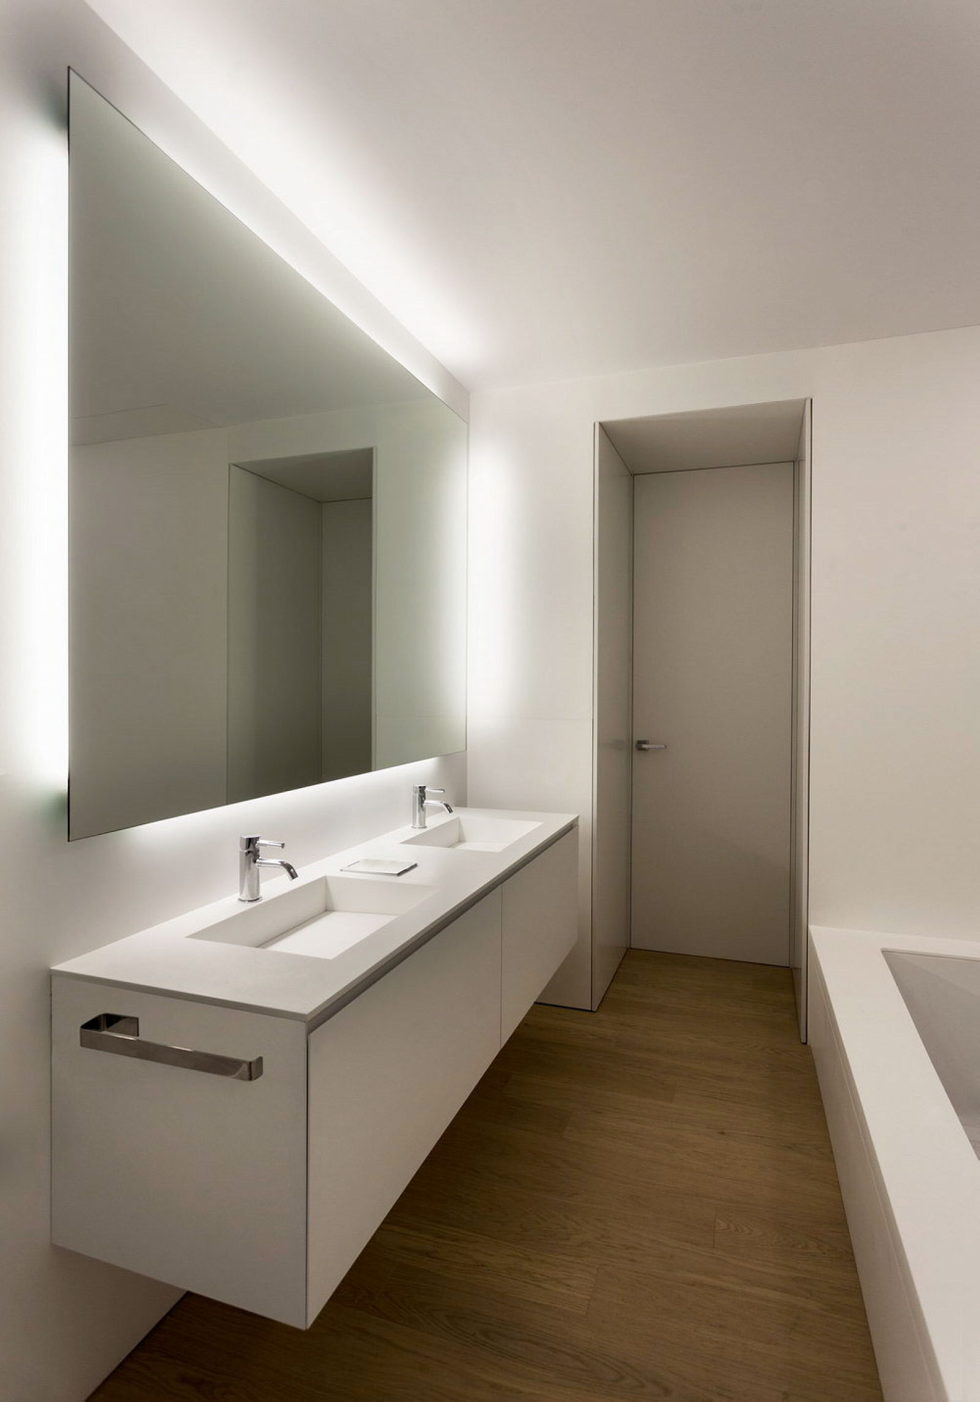 Contemporarily Designed Apartment In Valencia by Fran Silvestre Arquitectos 17